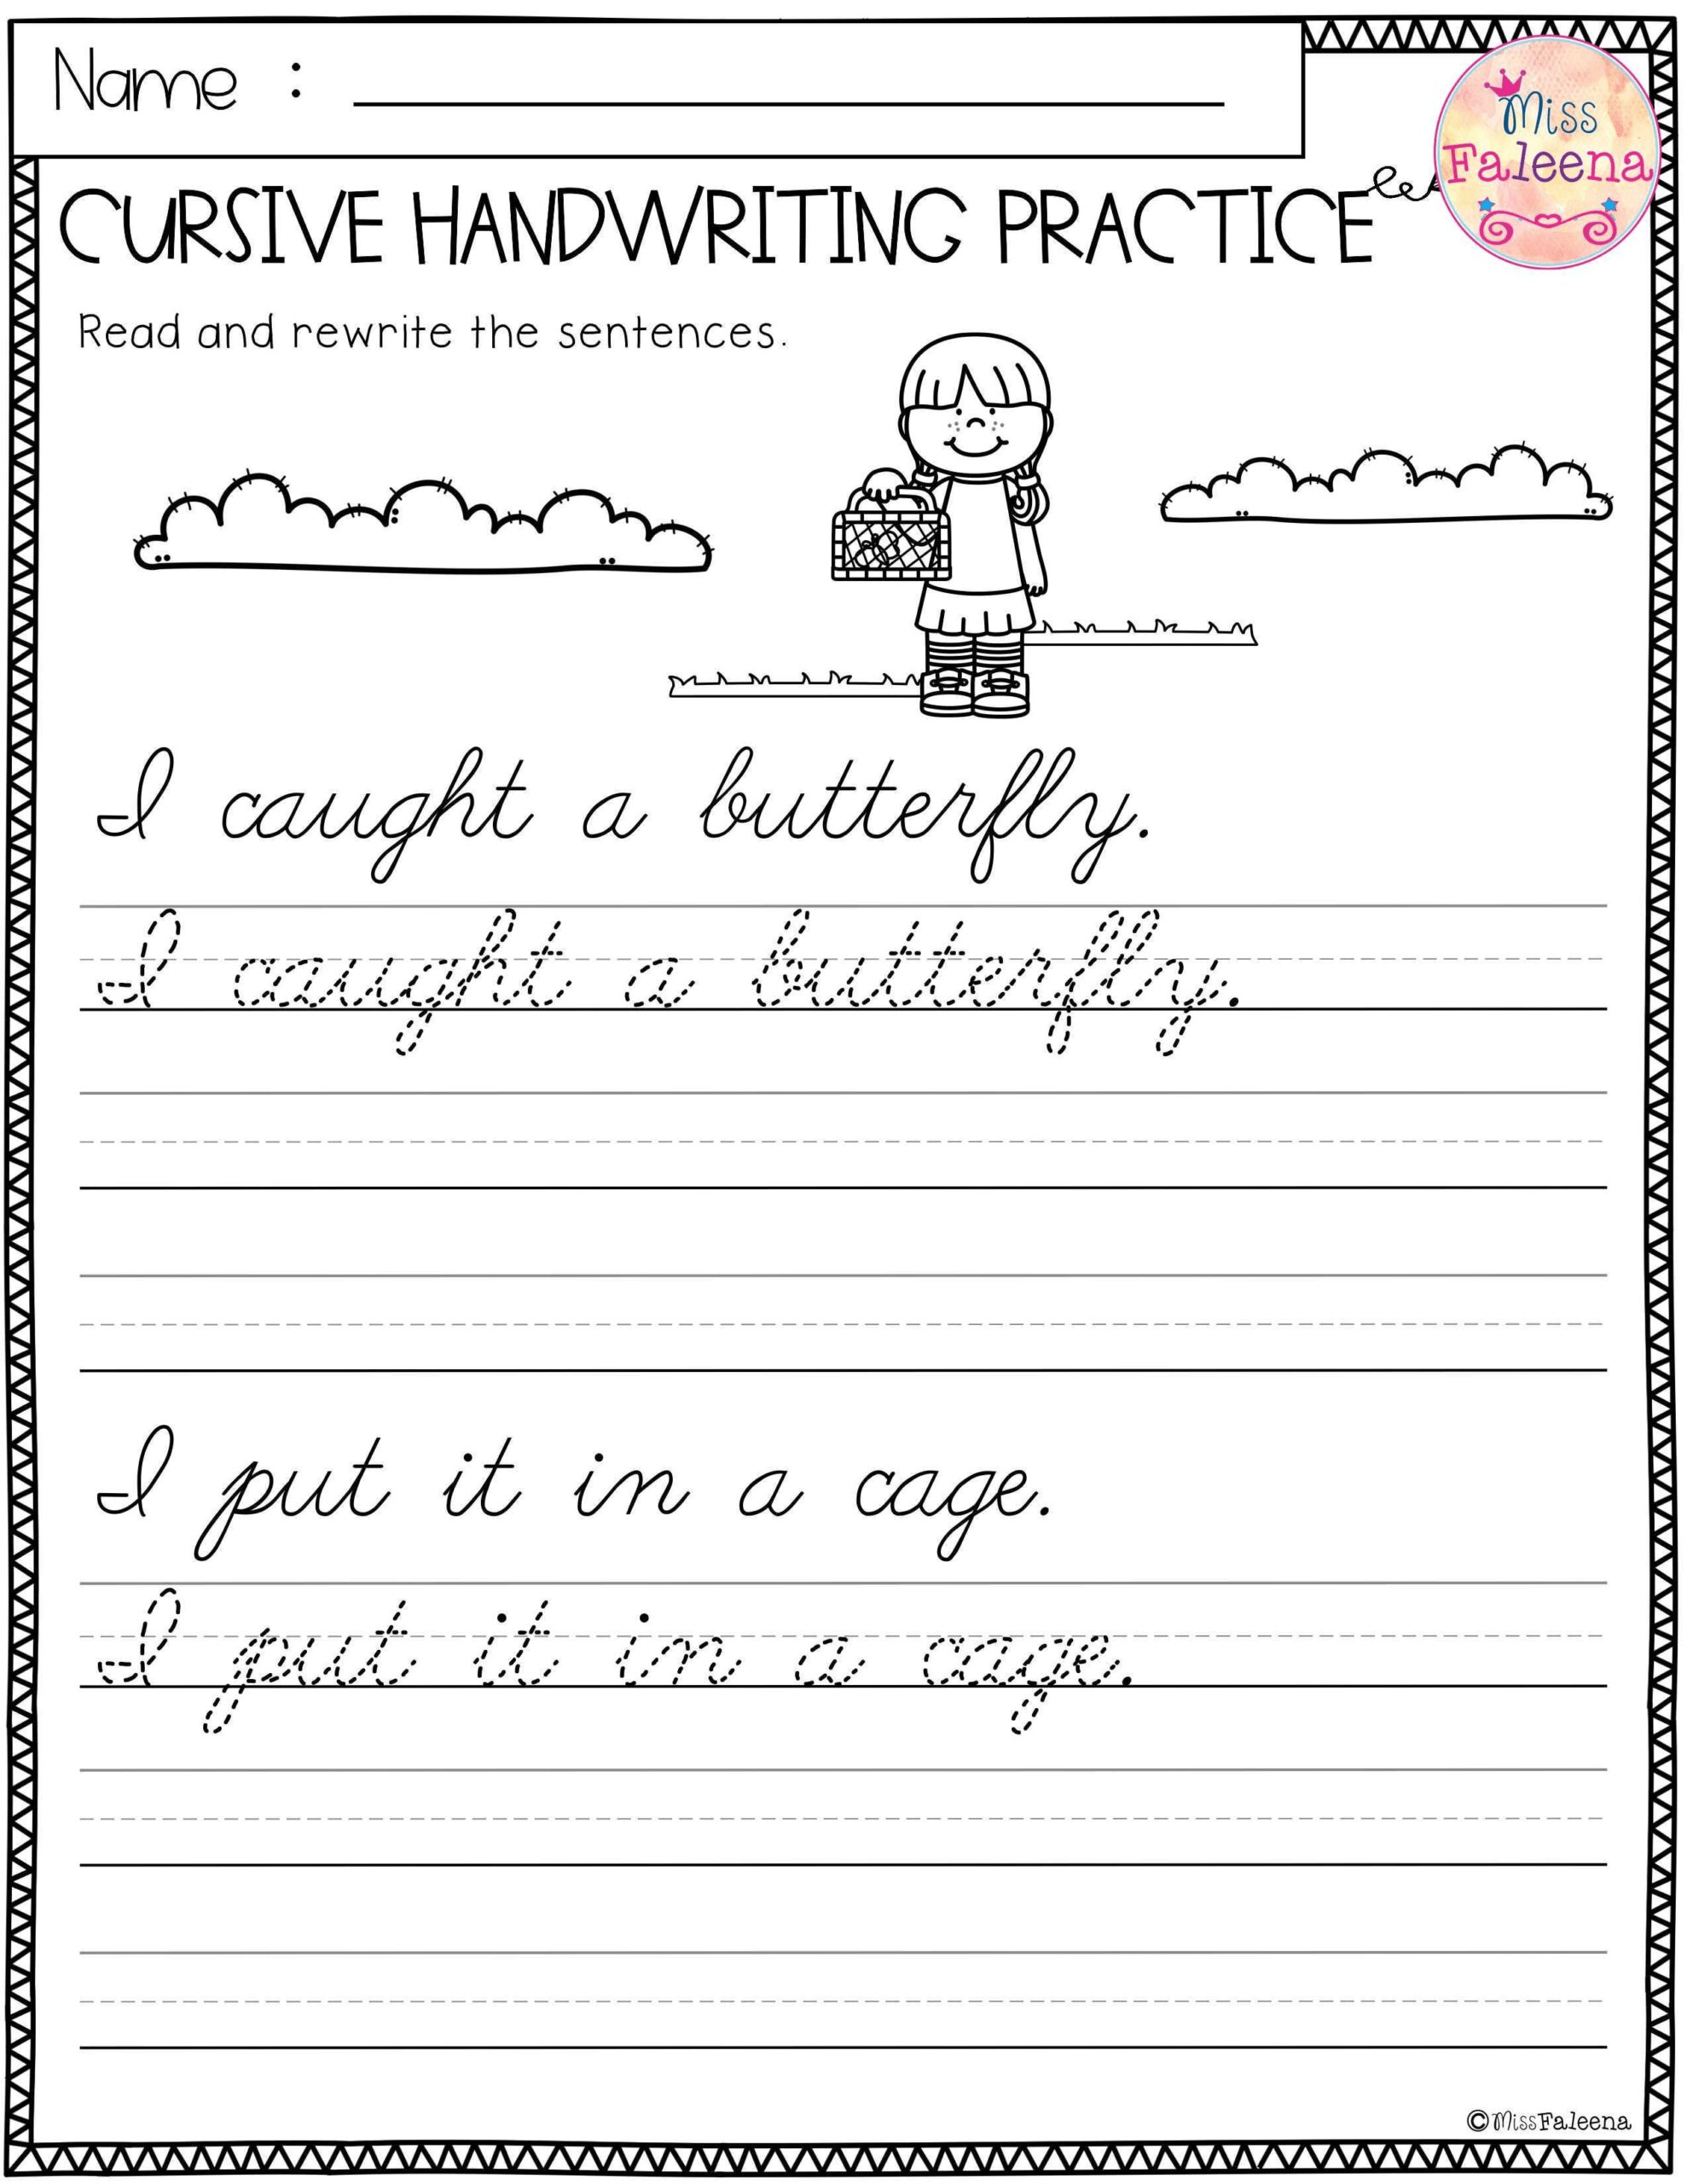 hight resolution of Free 3rd Grade Cursive Writing Worksheets   Printable Worksheets and  Activities for Teachers